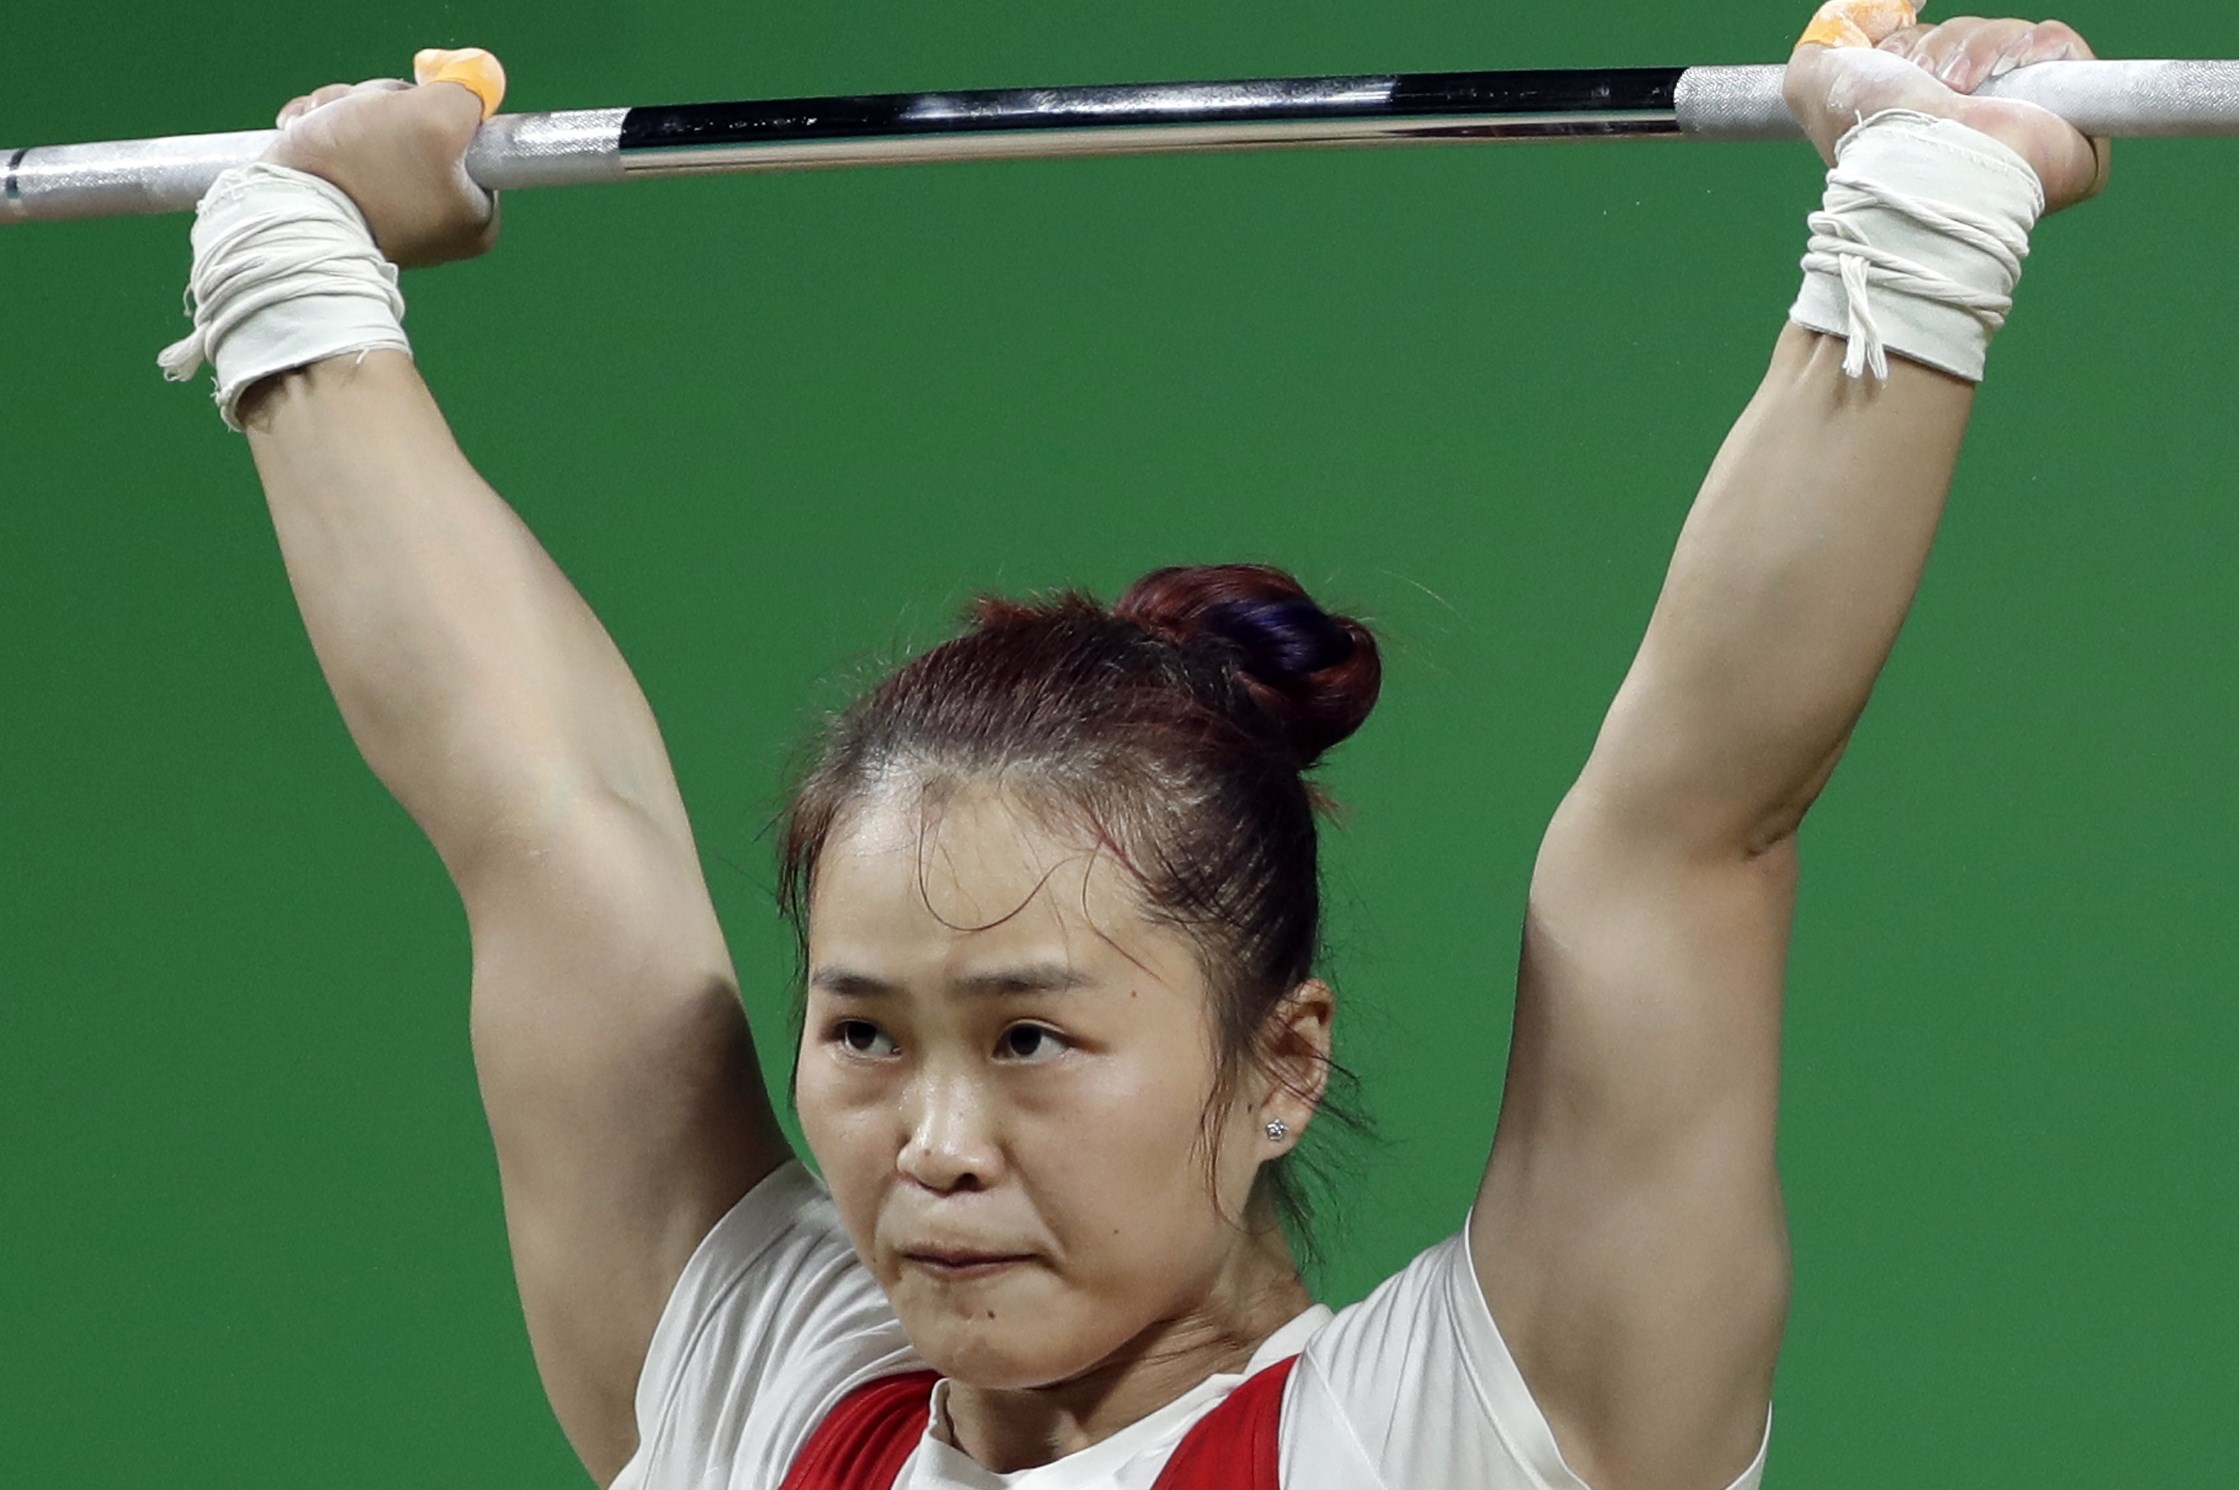 Deng Wei, of China, competes in the women's 63kg weightlifting competition at the 2016 Summer Olympics in Rio de Janeiro, Brazil, Tuesday, Aug. 9, 2016. (AP Photo/Mike Groll)